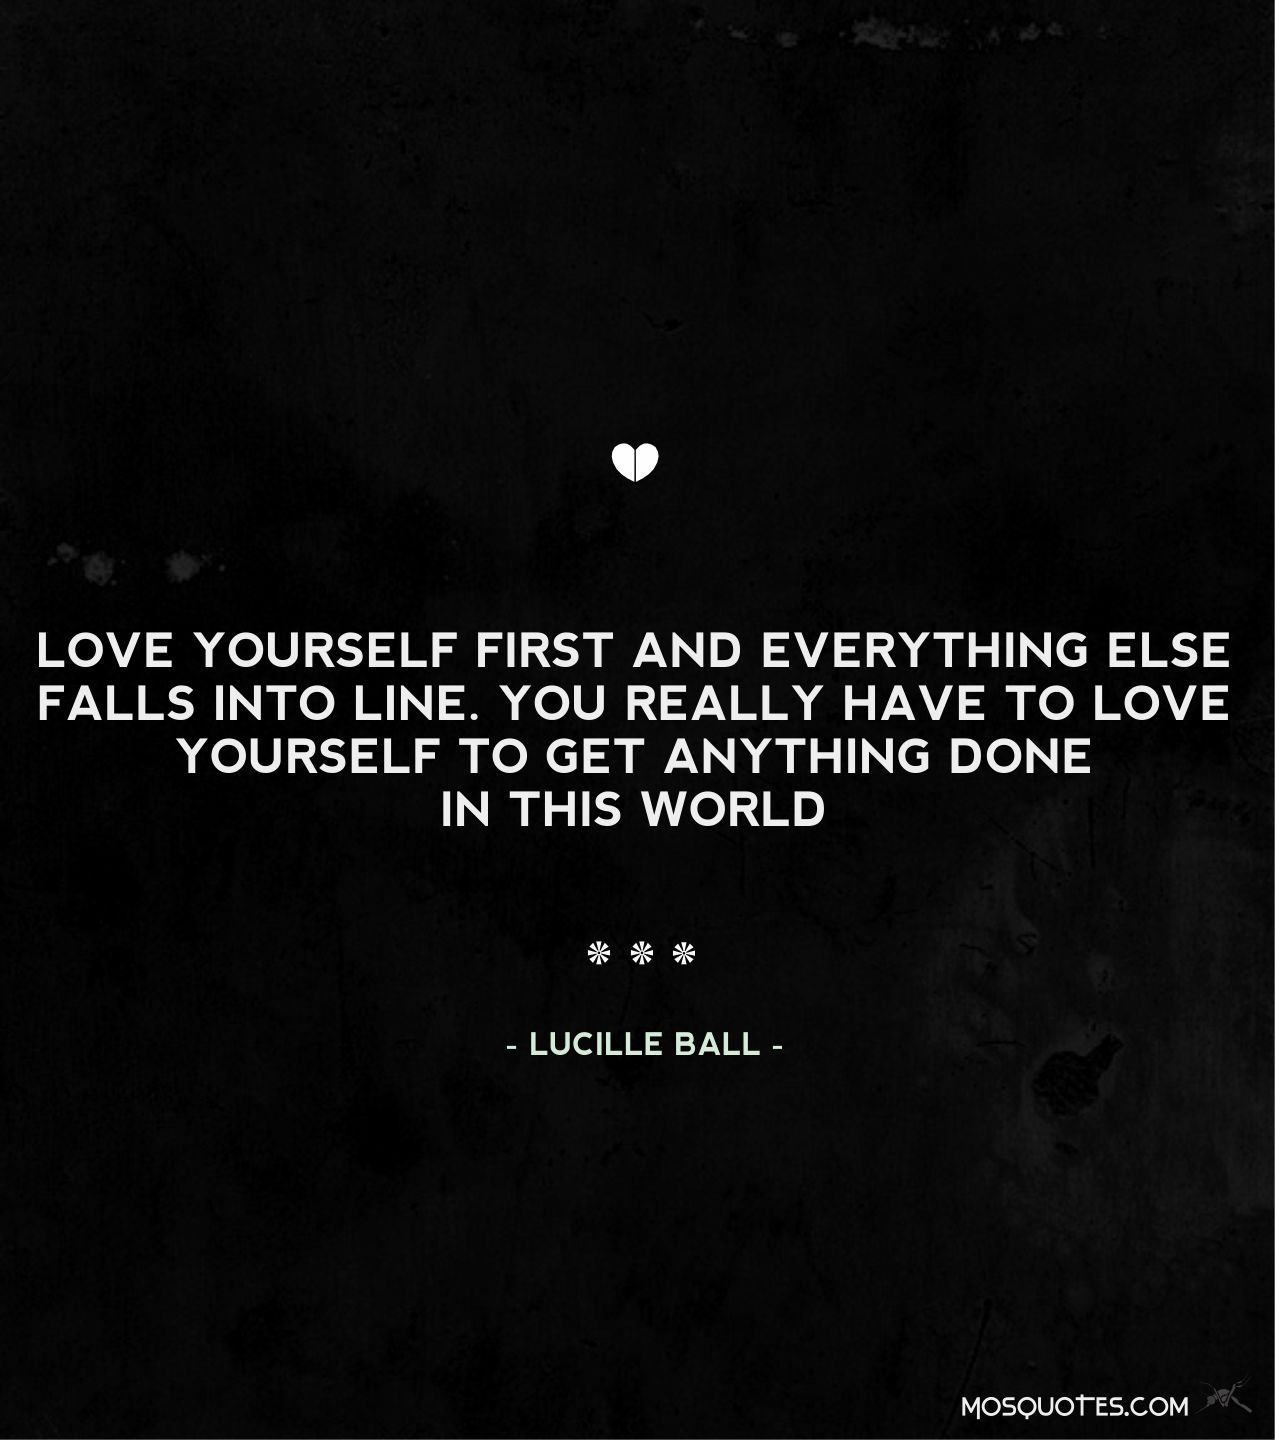 Quotes About Love: Famous Quotes About Love First. QuotesGram